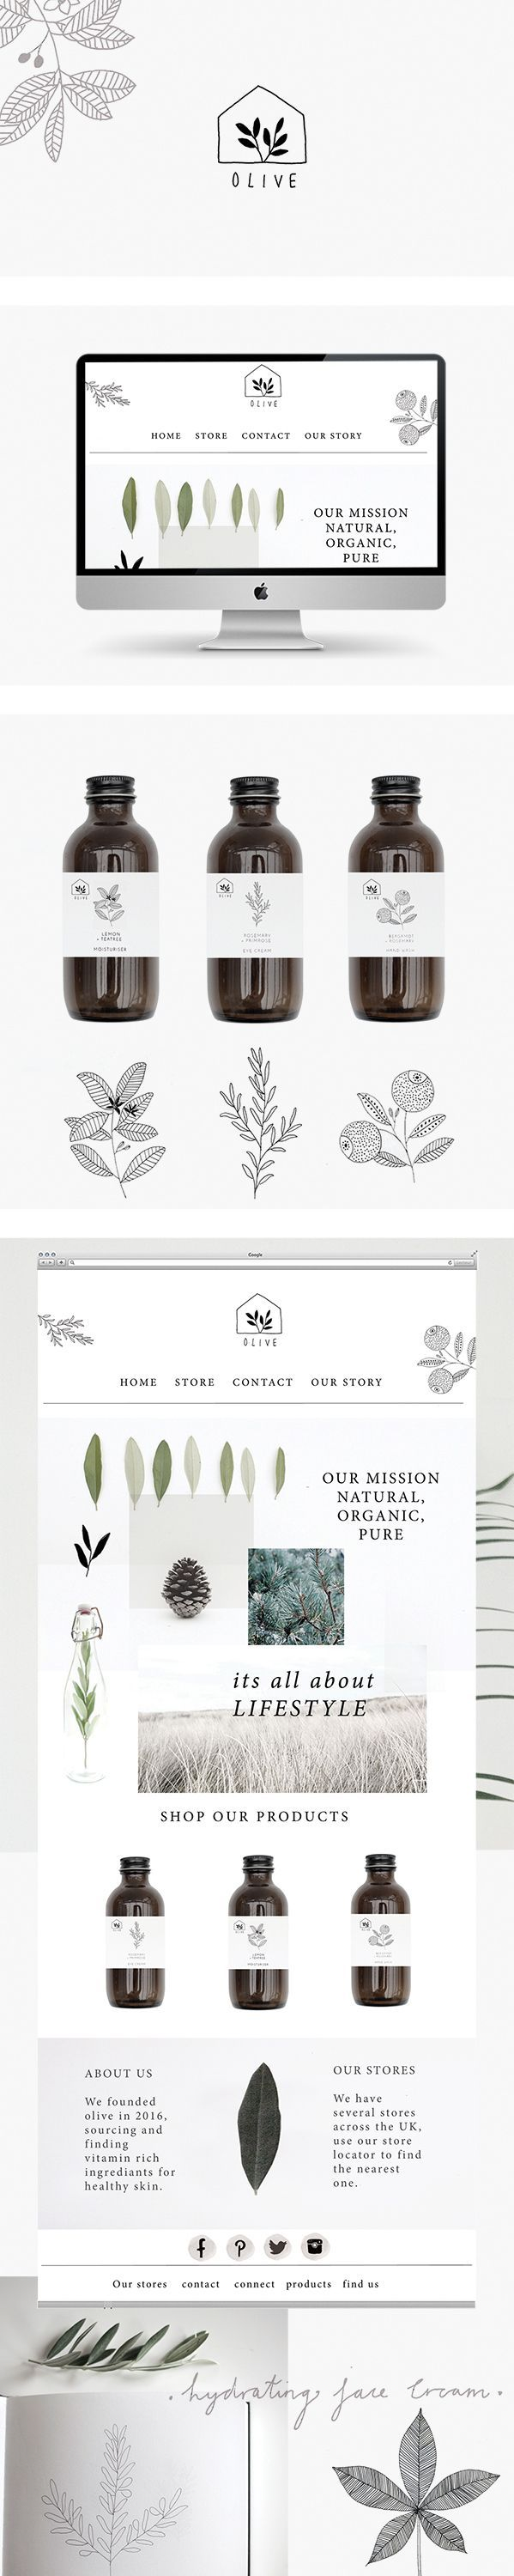 Branding and website for olive skincare by Ryn Frank logo design minimalist icon line drawing illustration packaging bottle: